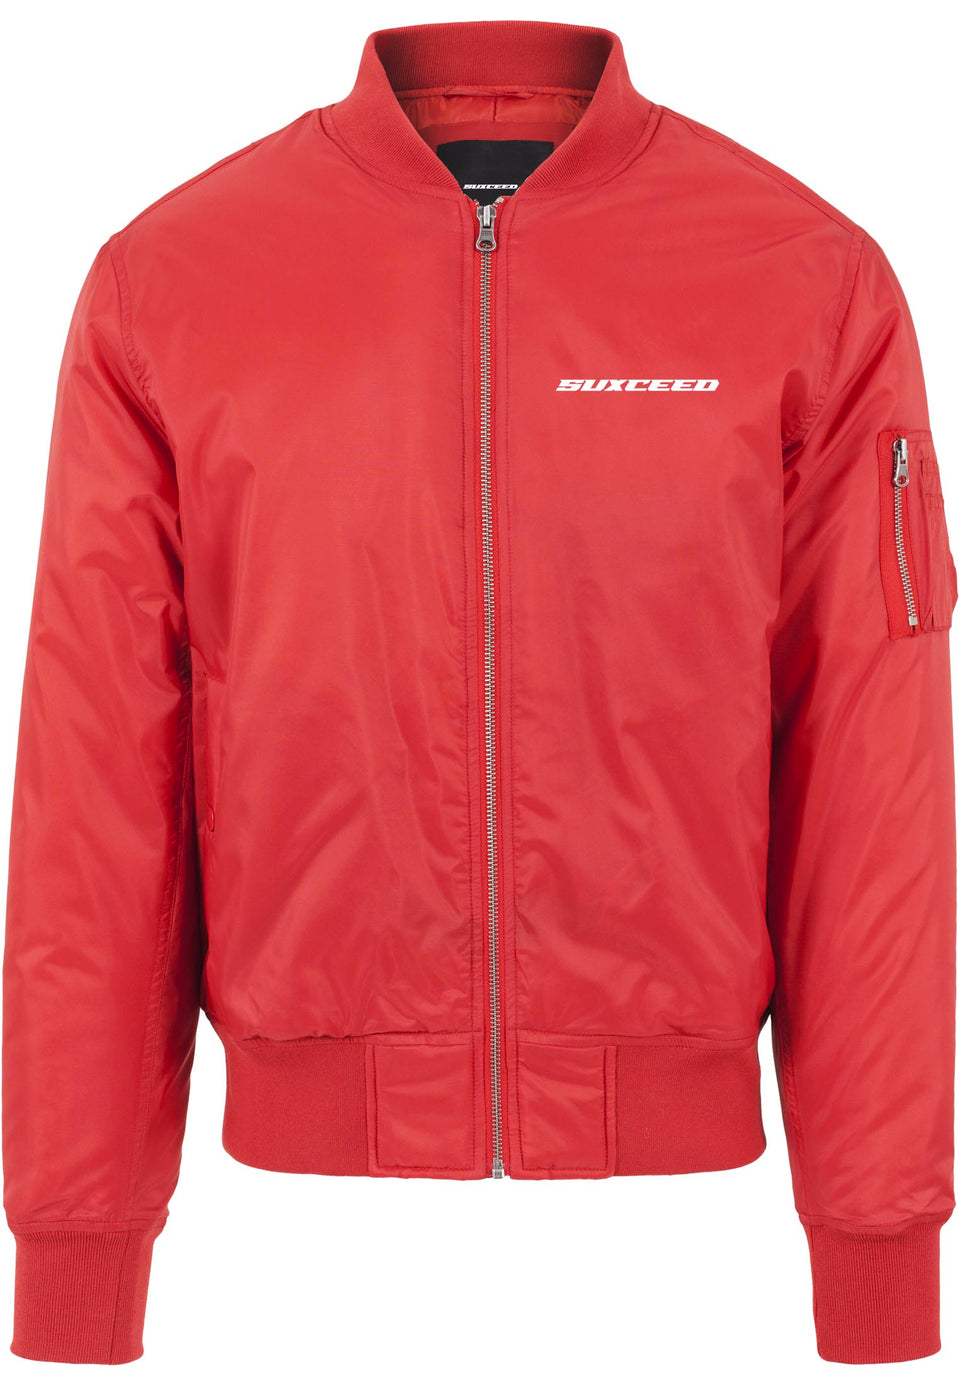 FEARLESS LOGO Red Bomber Jacket (LIMITED)